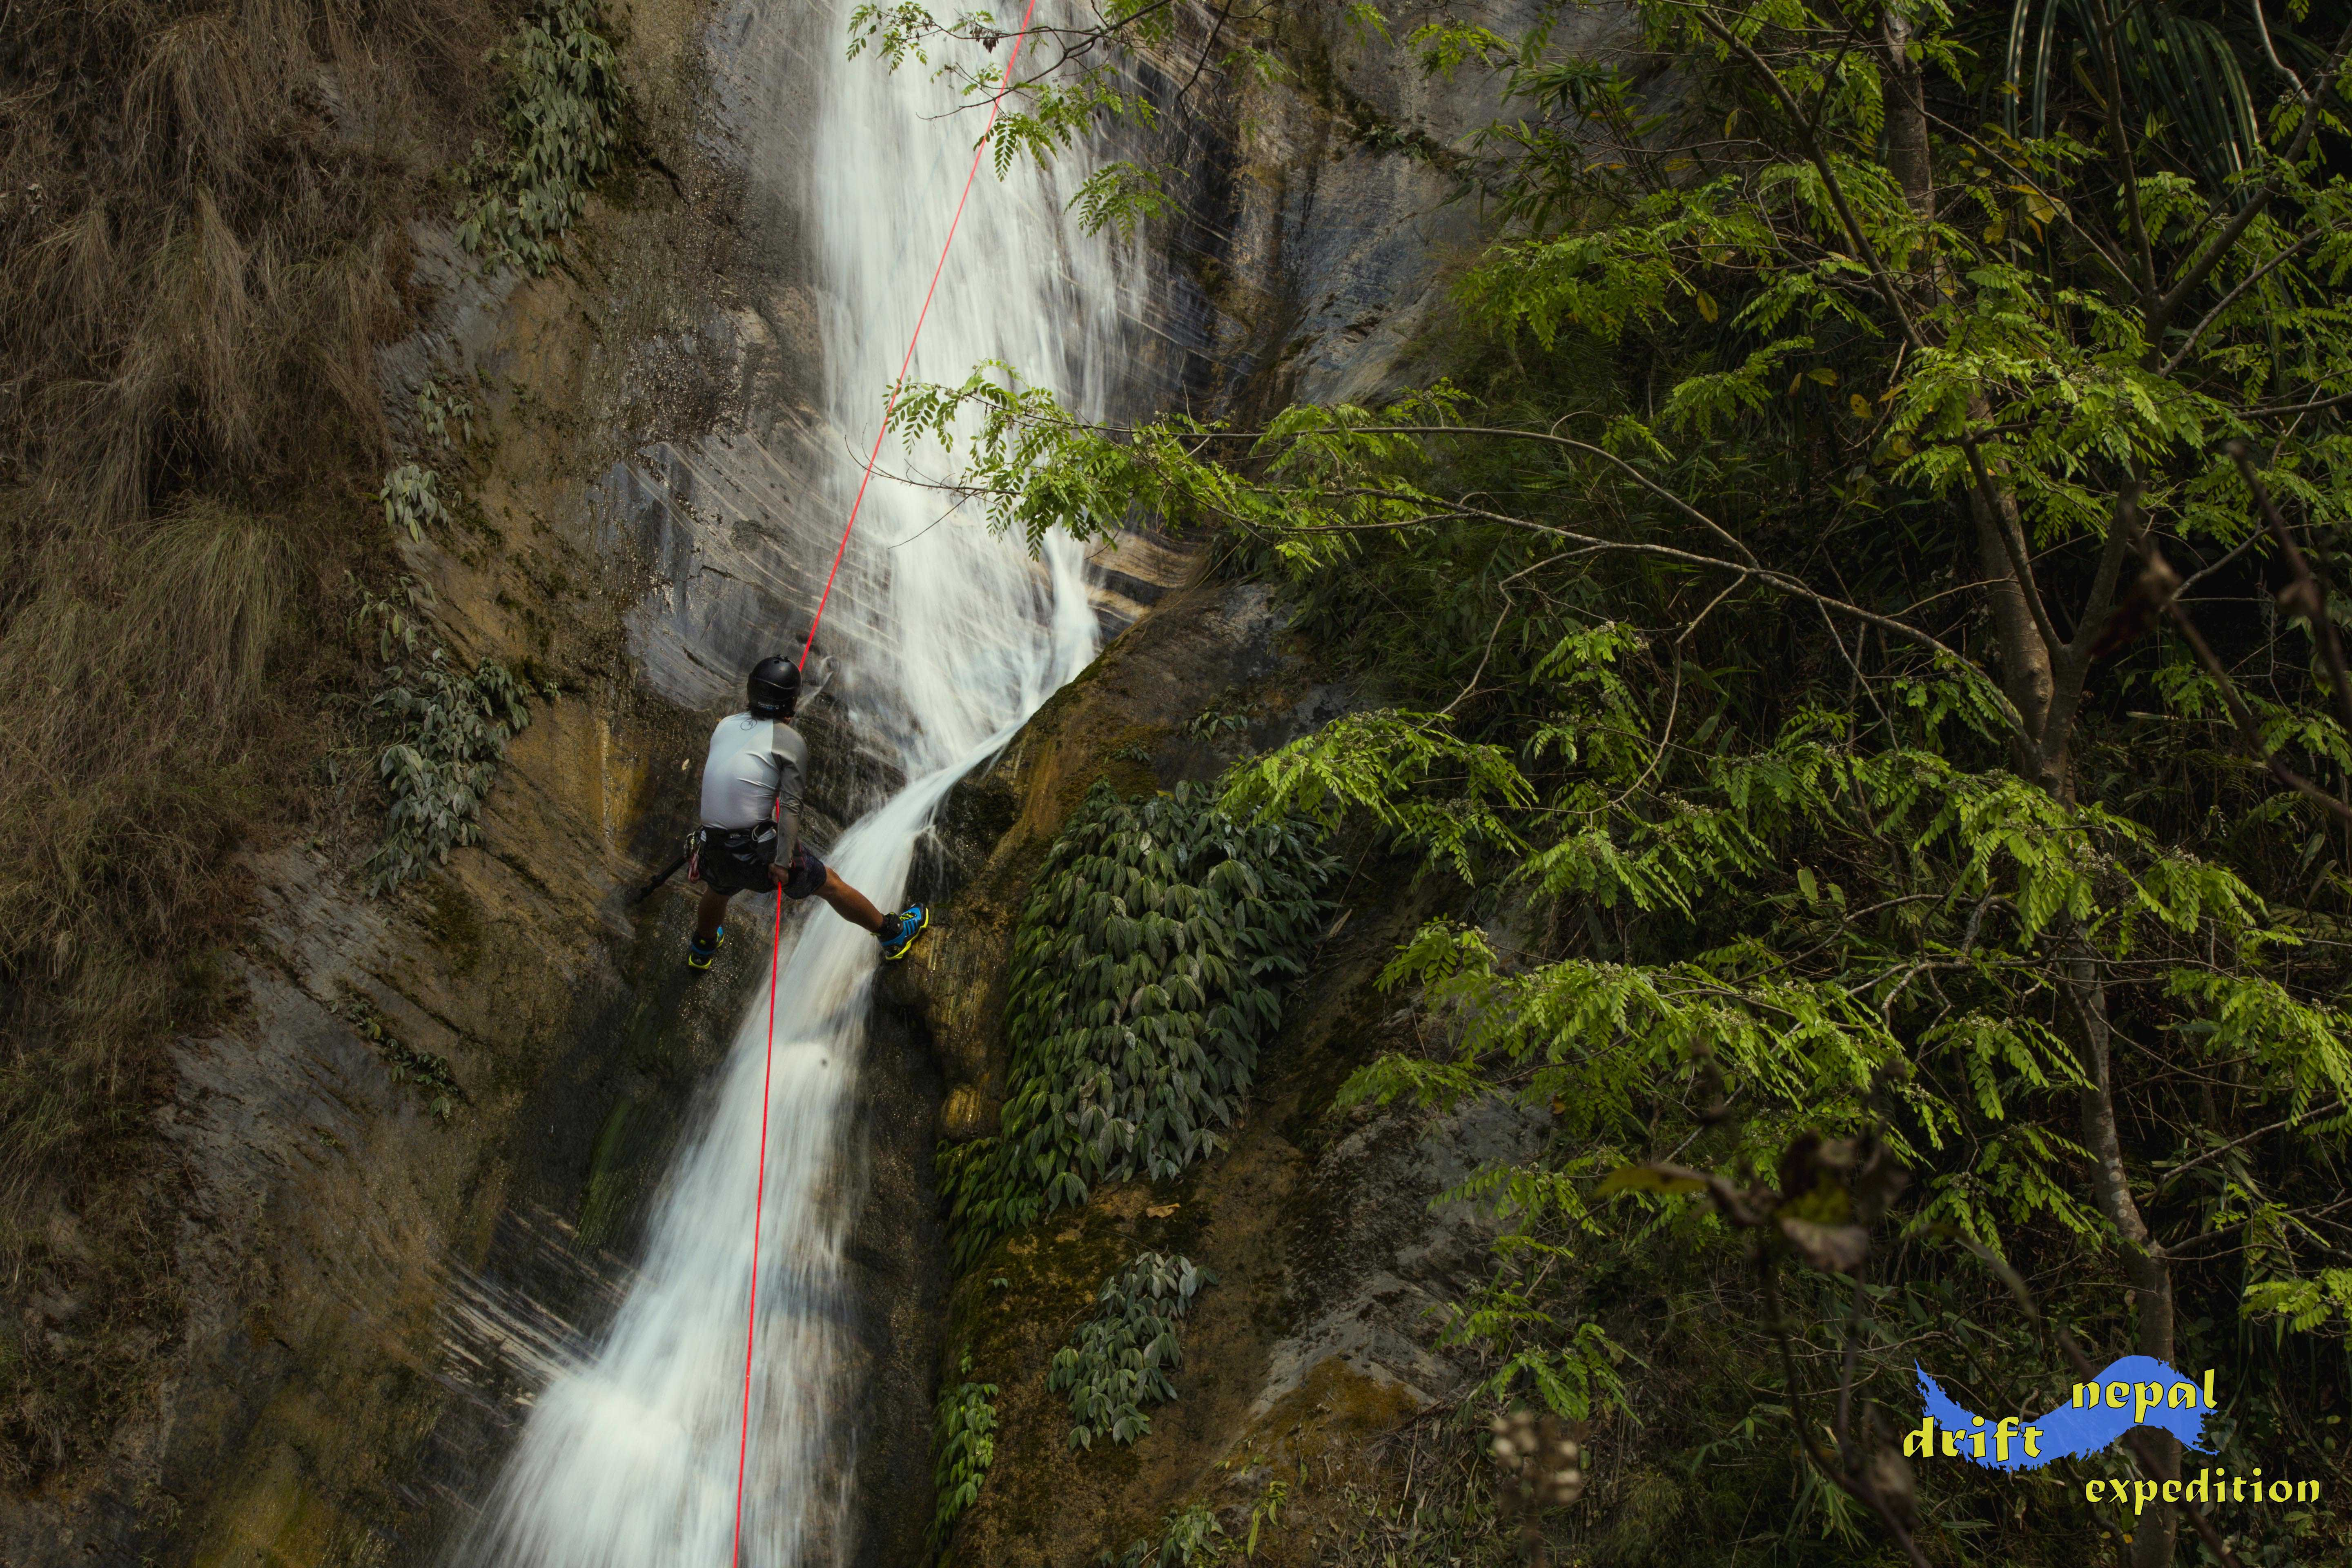 Canyoning service